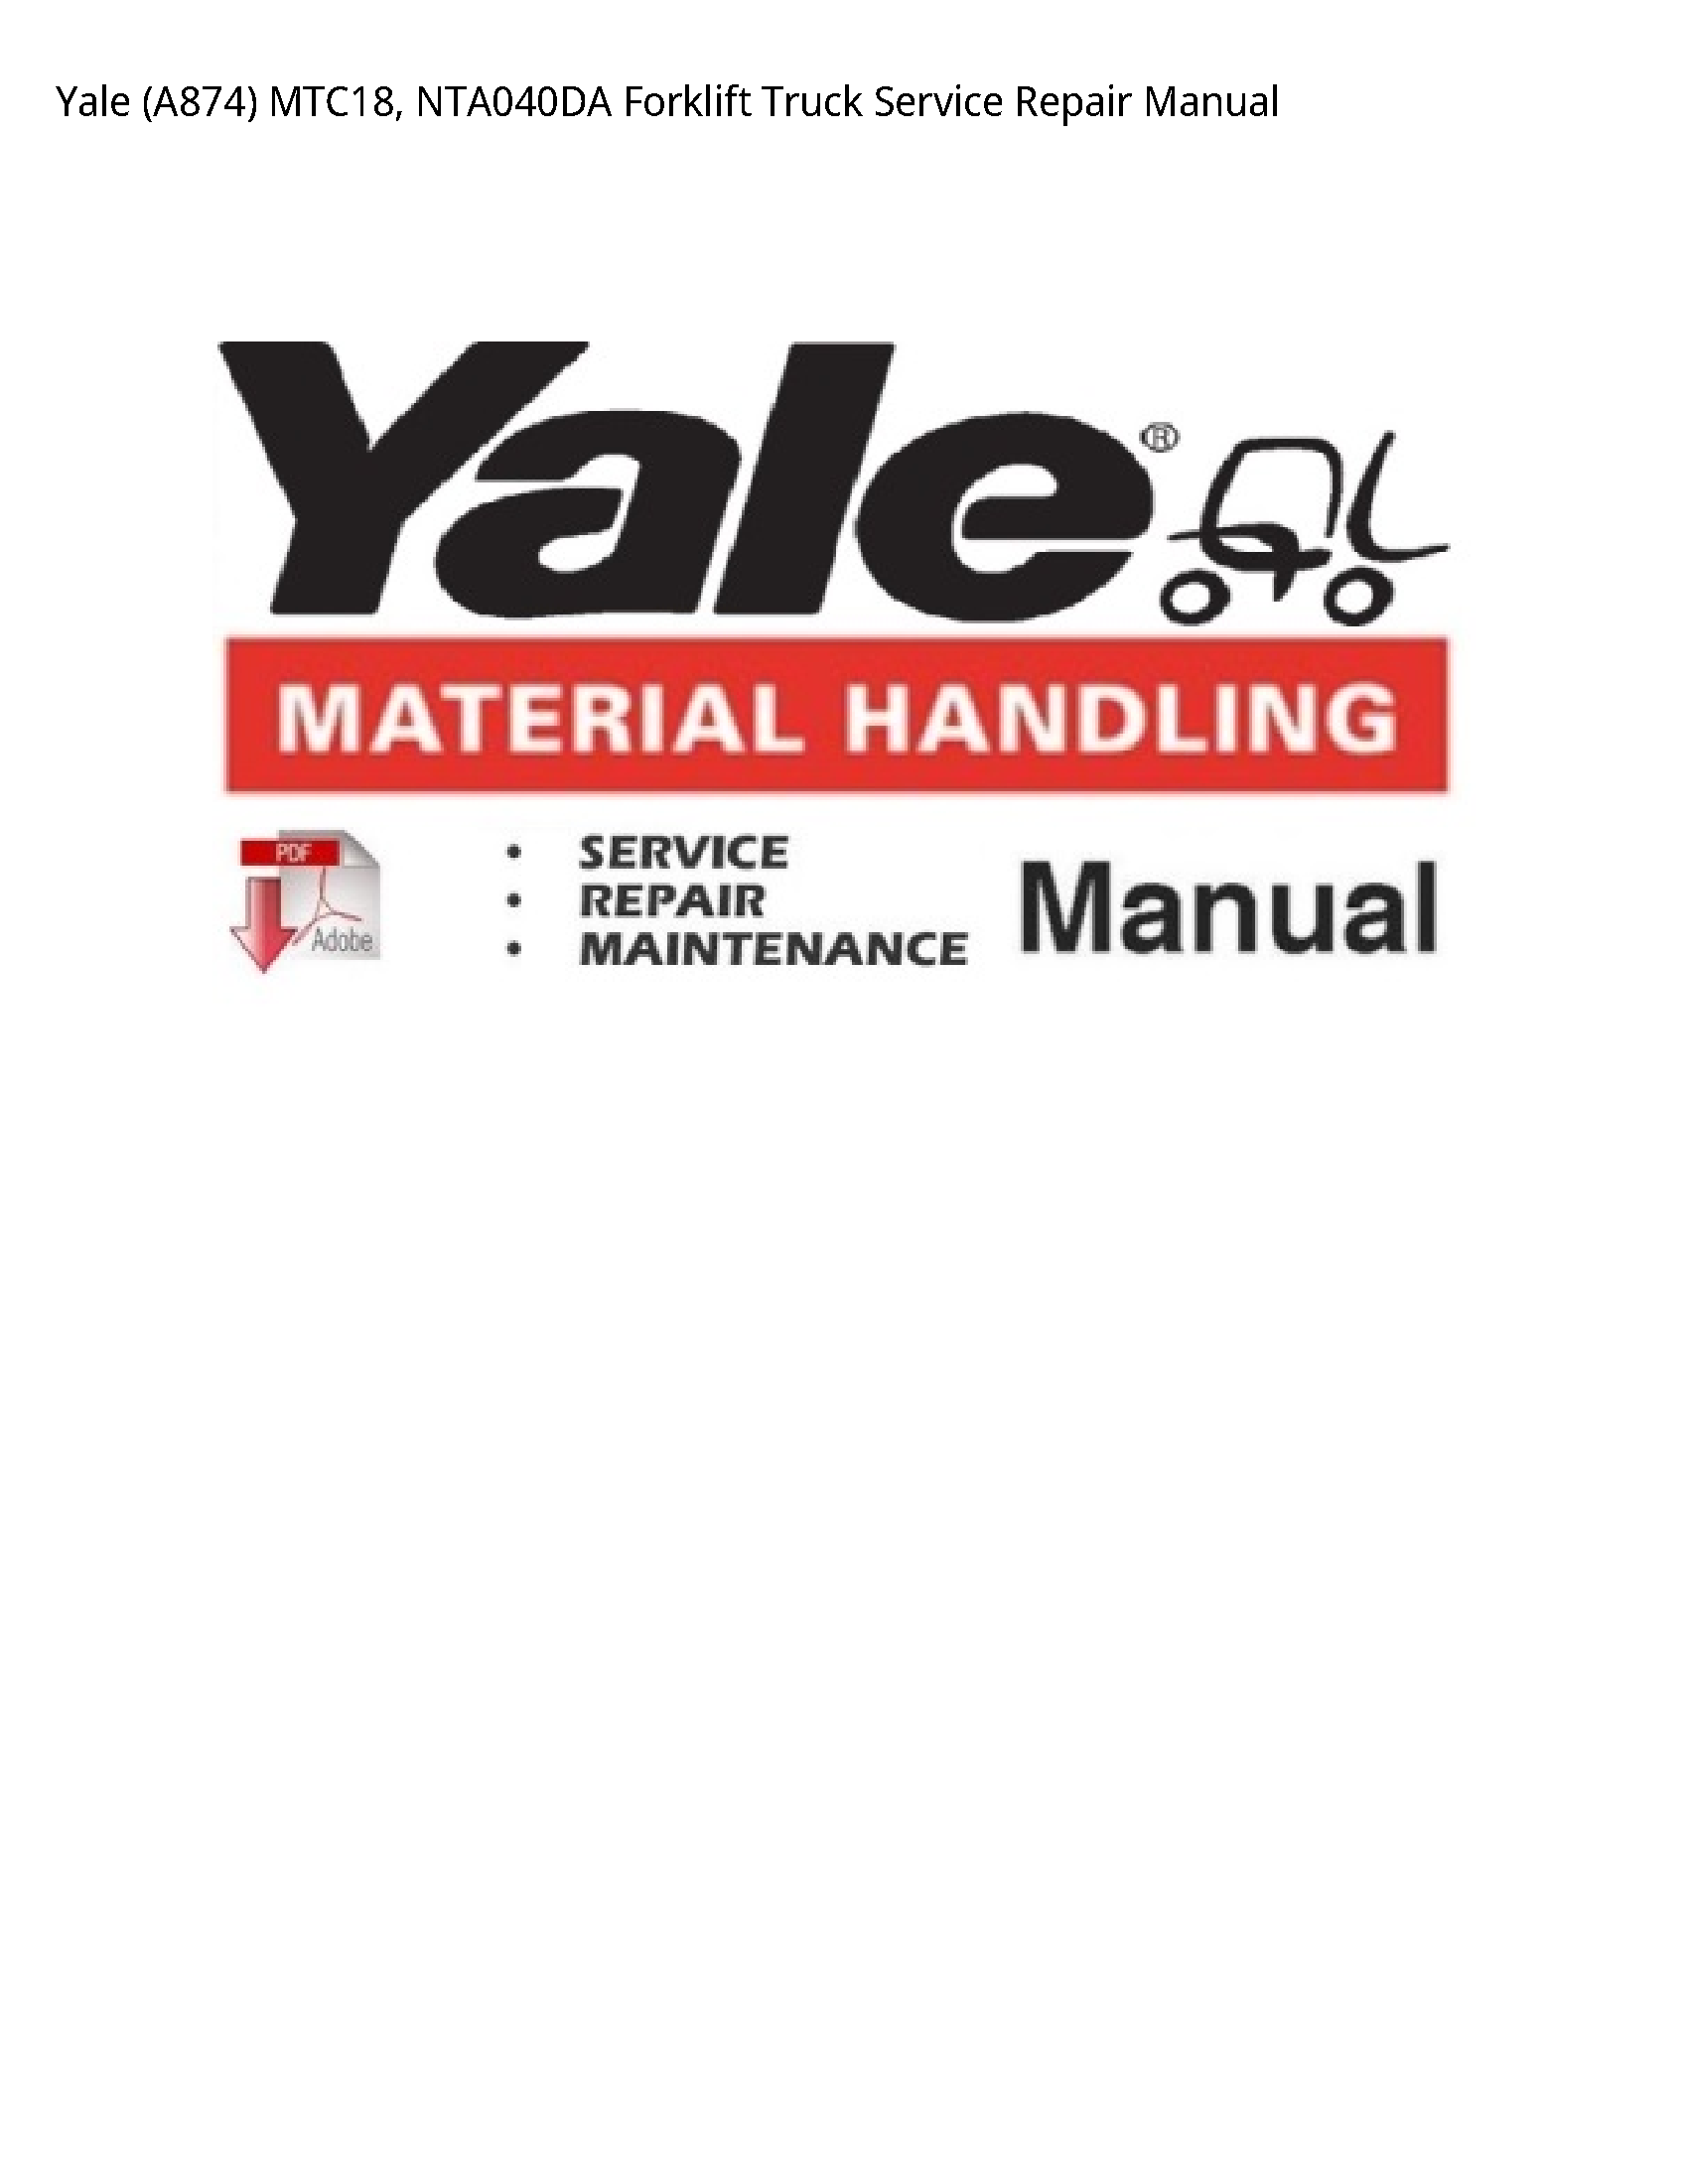 Yale (A874) Forklift Truck manual